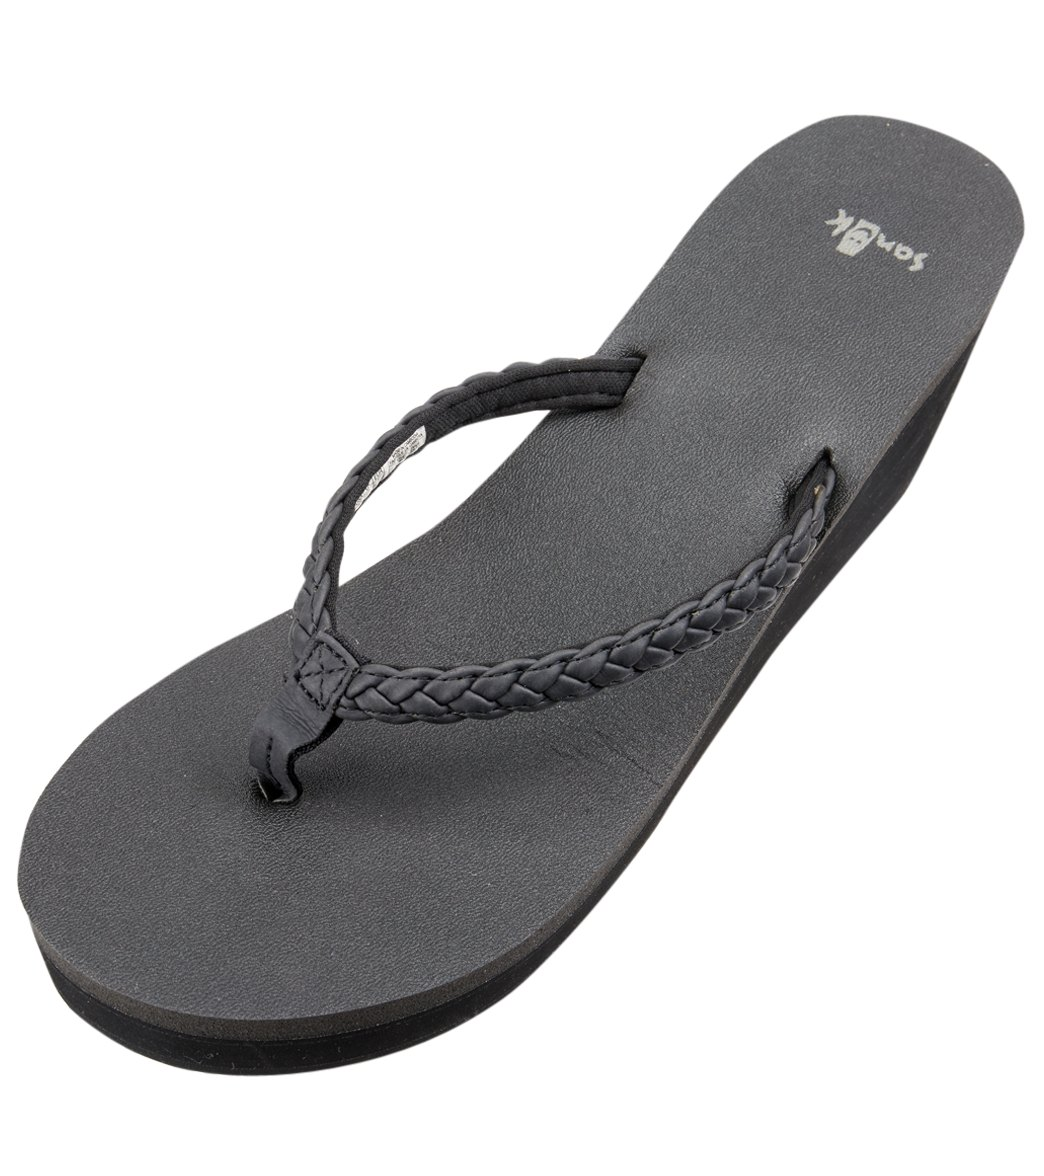 f81af0708fef Sanuk Women s Yoga Braided Wedge Flip Flop at SwimOutlet.com